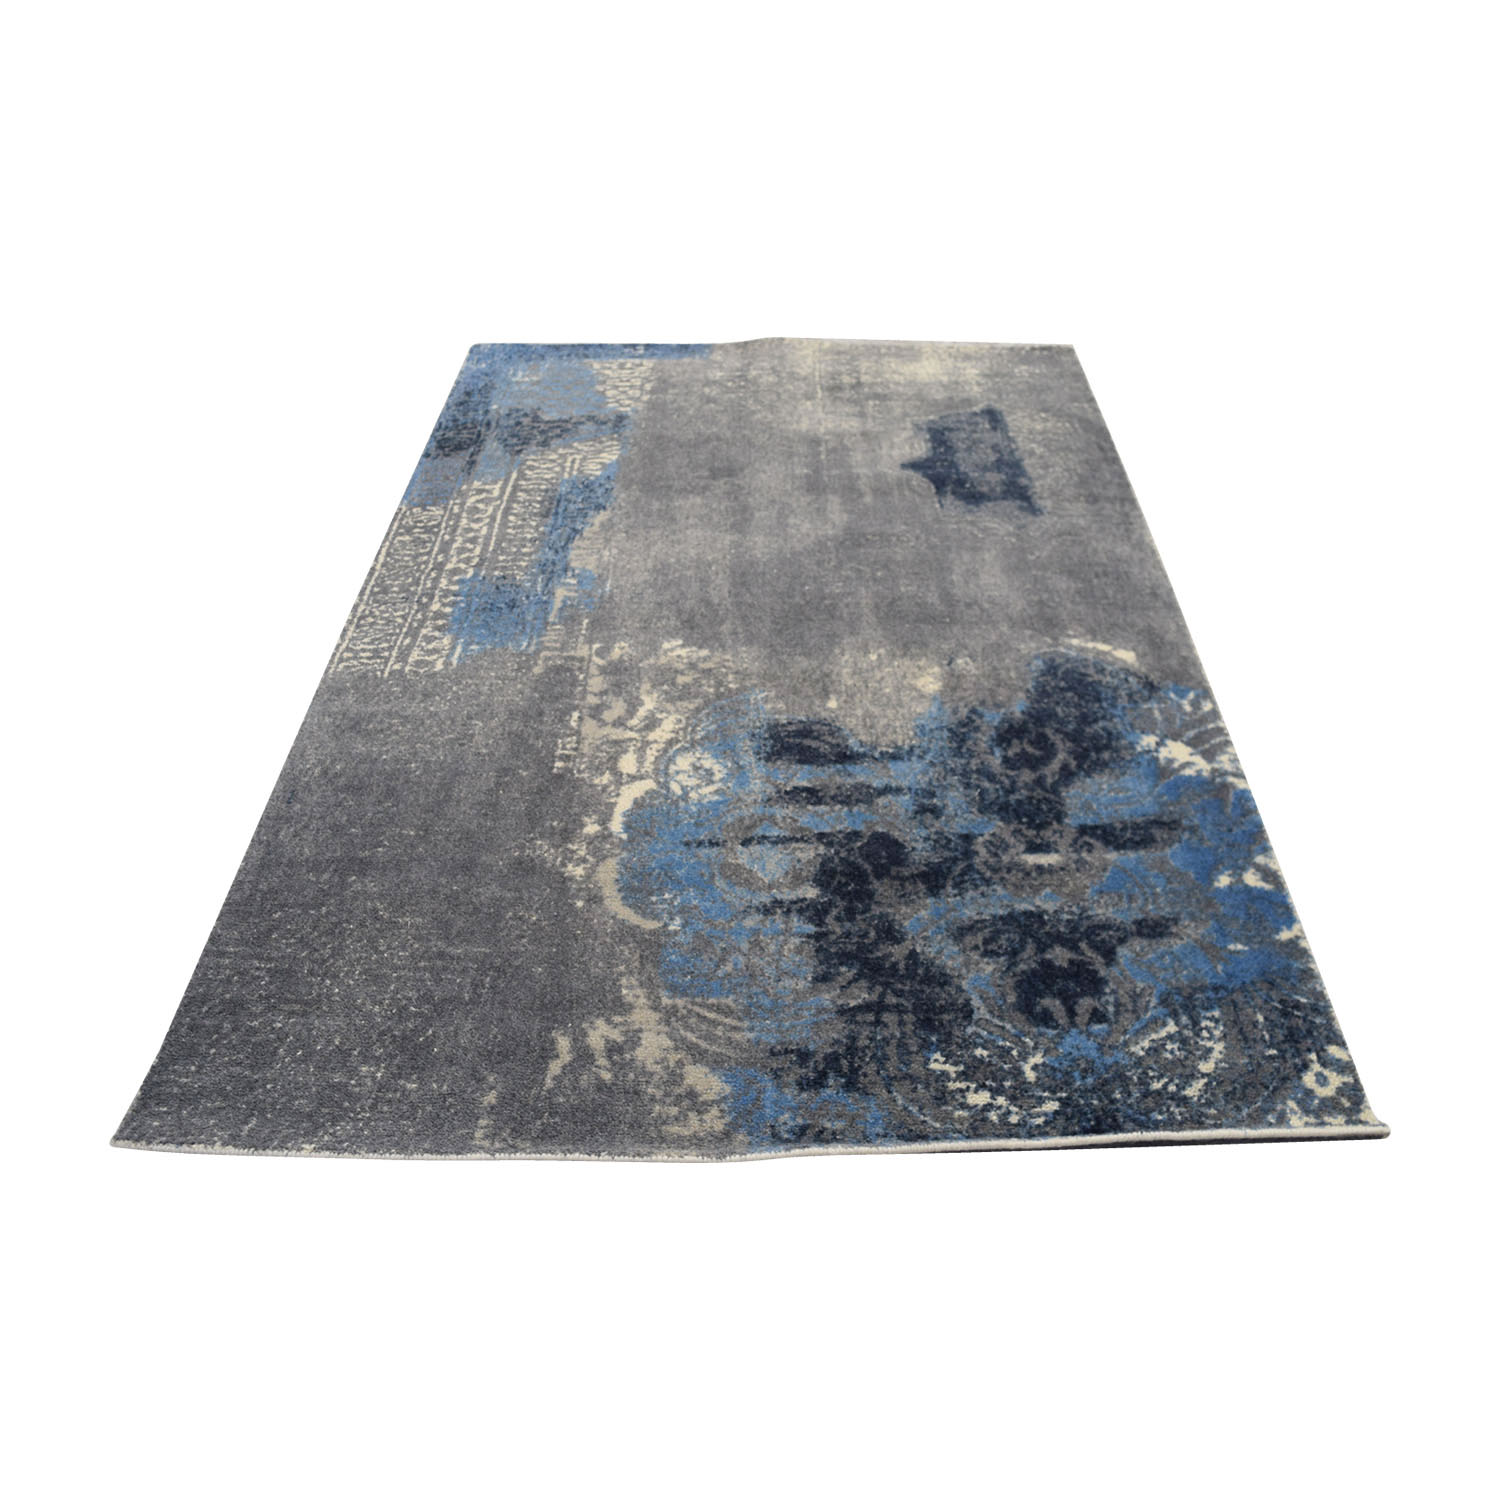 Obeetee Obeetee Blue Grey Hand Tufted Wool Rug price